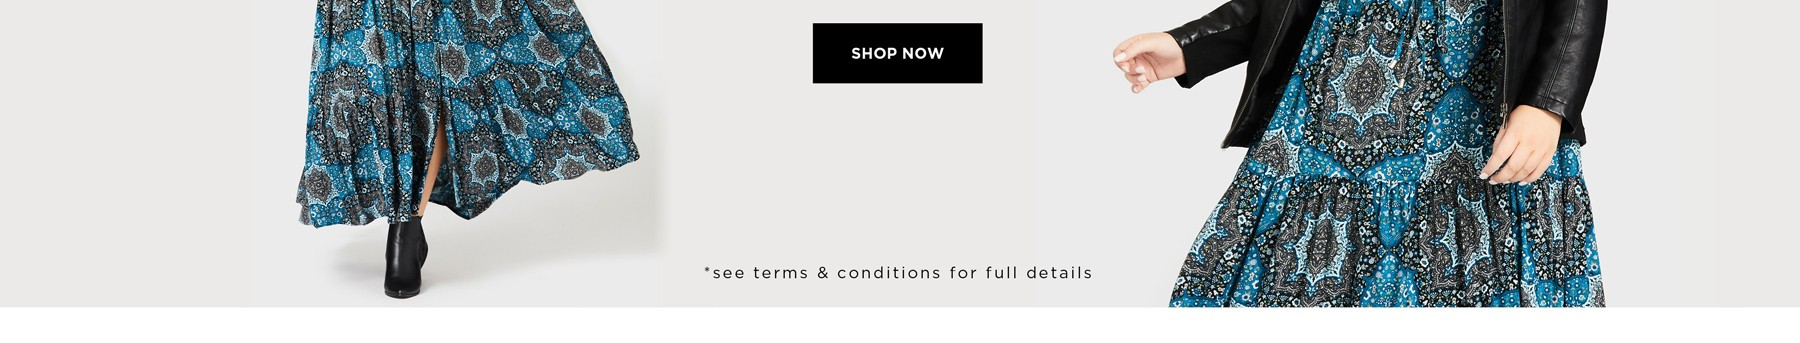 60% Off* All Dresses - See Terms & Conditions for full details - Prices as marked - SHOP NOW